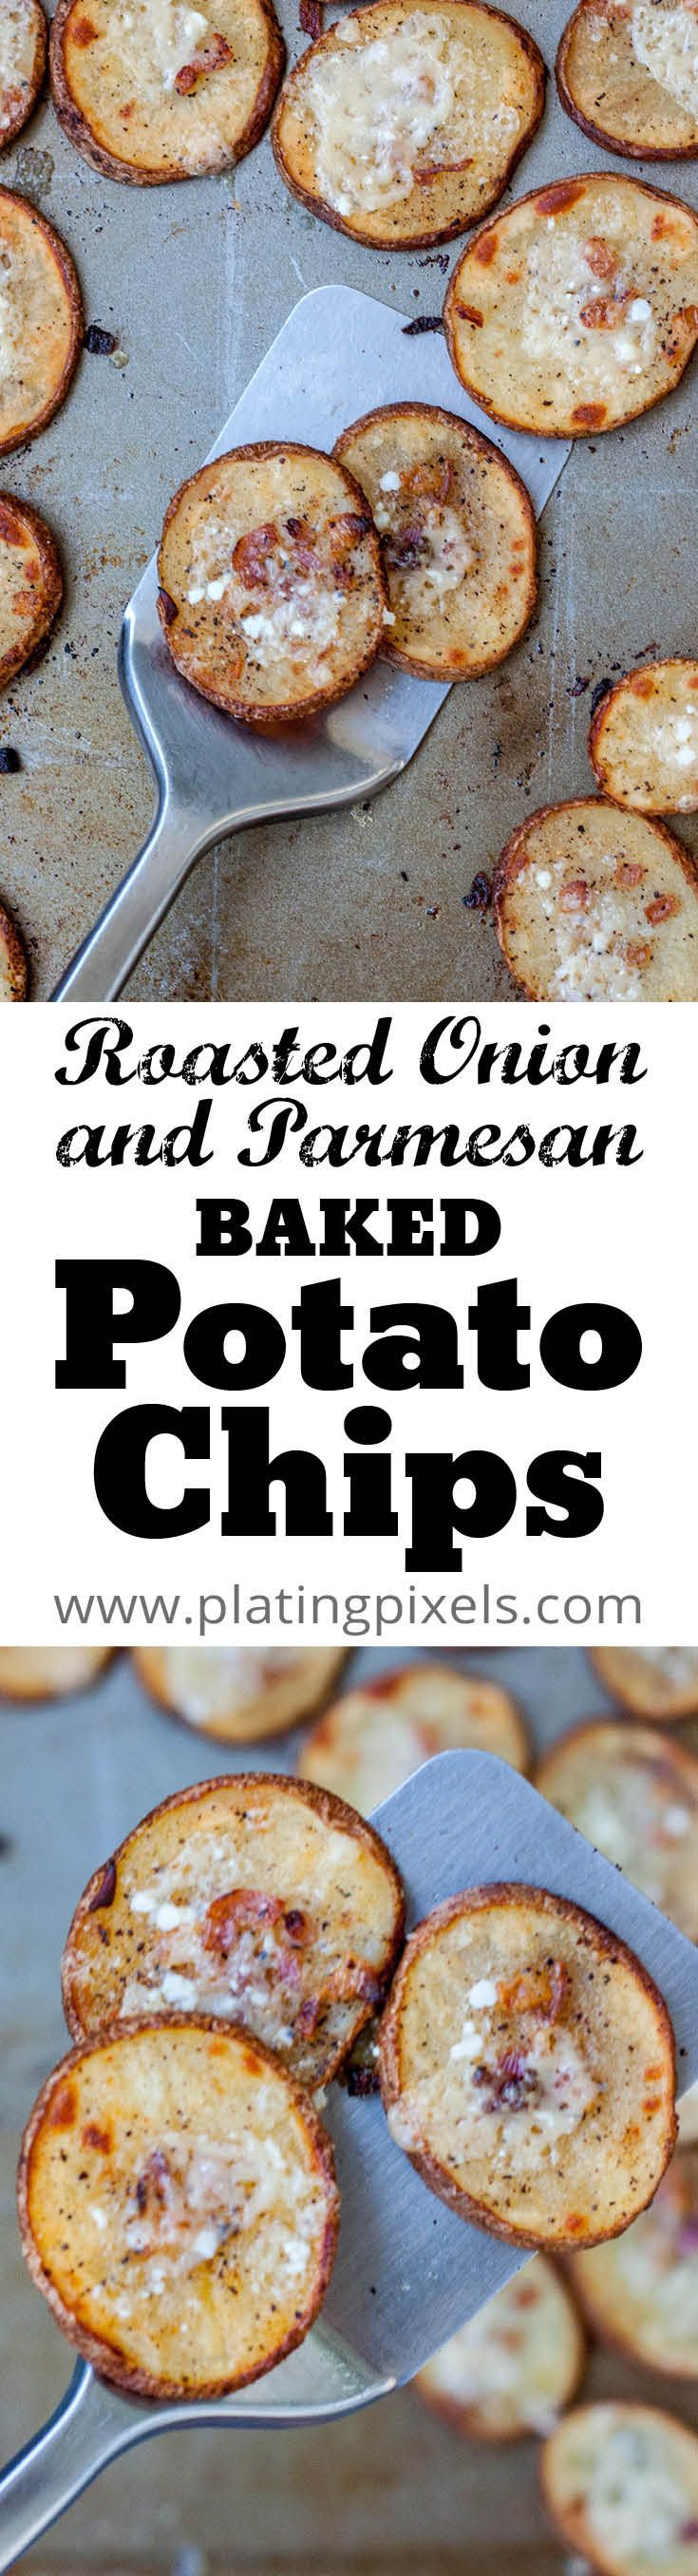 Crisp Roasted Onion Parmesan Baked Potato Chips by Plating Pixels. Red onions and spices with creamy savory Parmesan cheese in healthy baked potatoes. Gluten-free recipe. - www.platingpixels.com